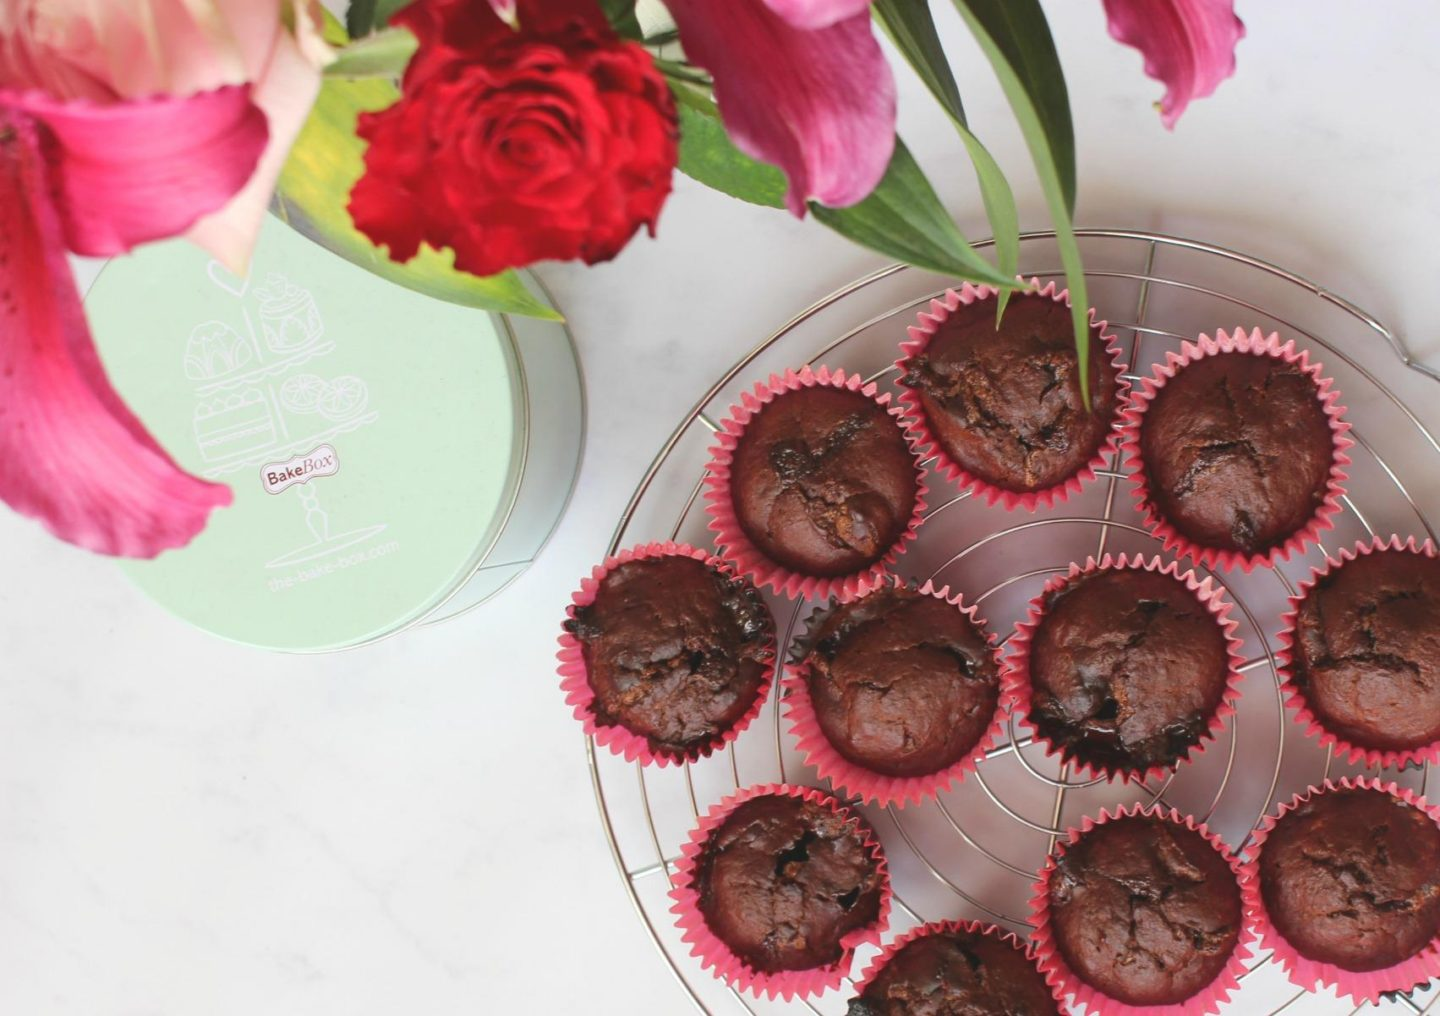 Chocolate & Banana Muffins